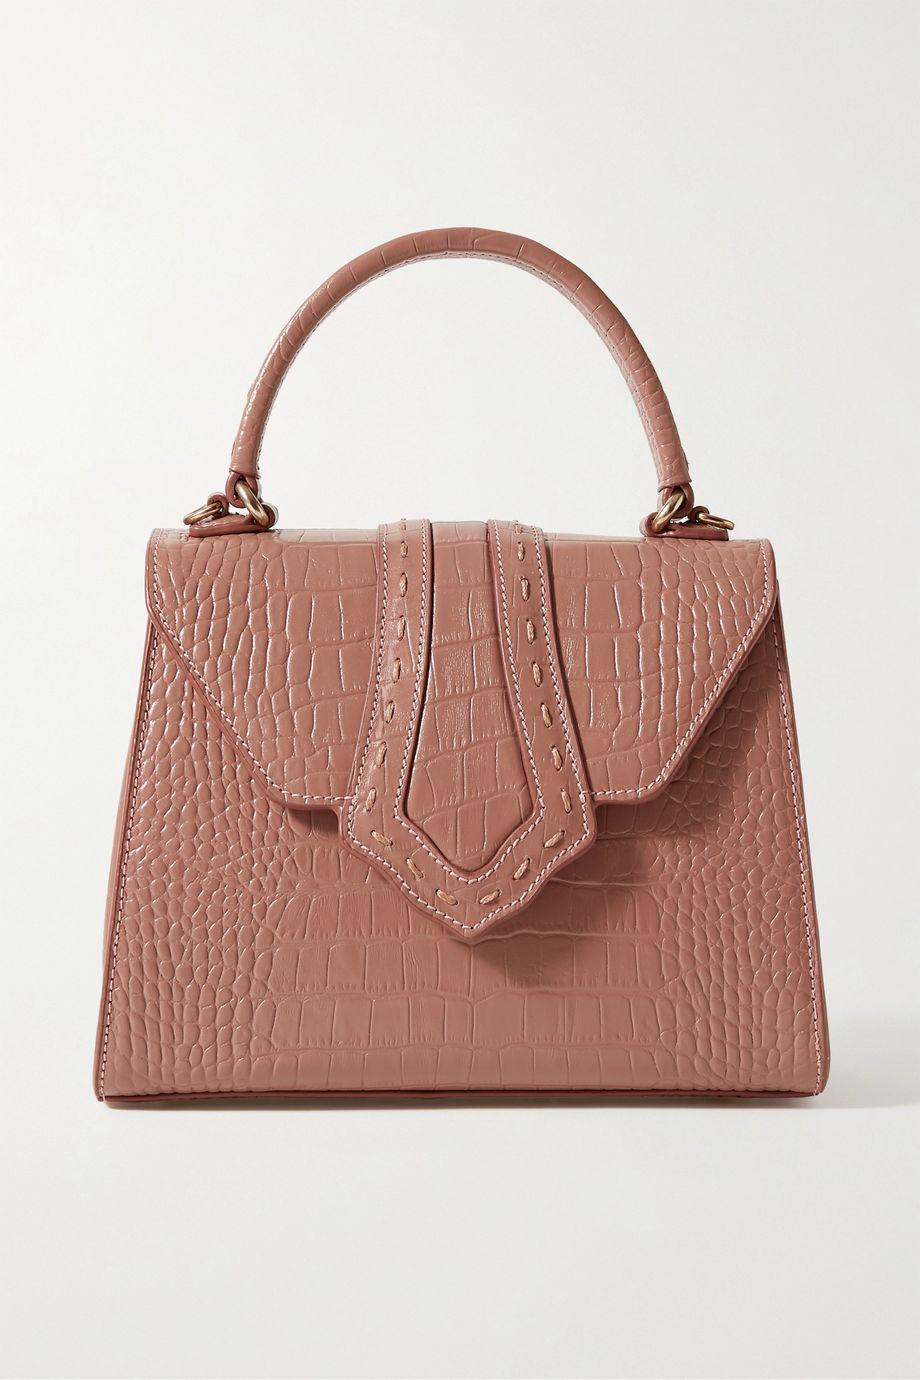 Mehry Mu Fey croc-effect leather tote